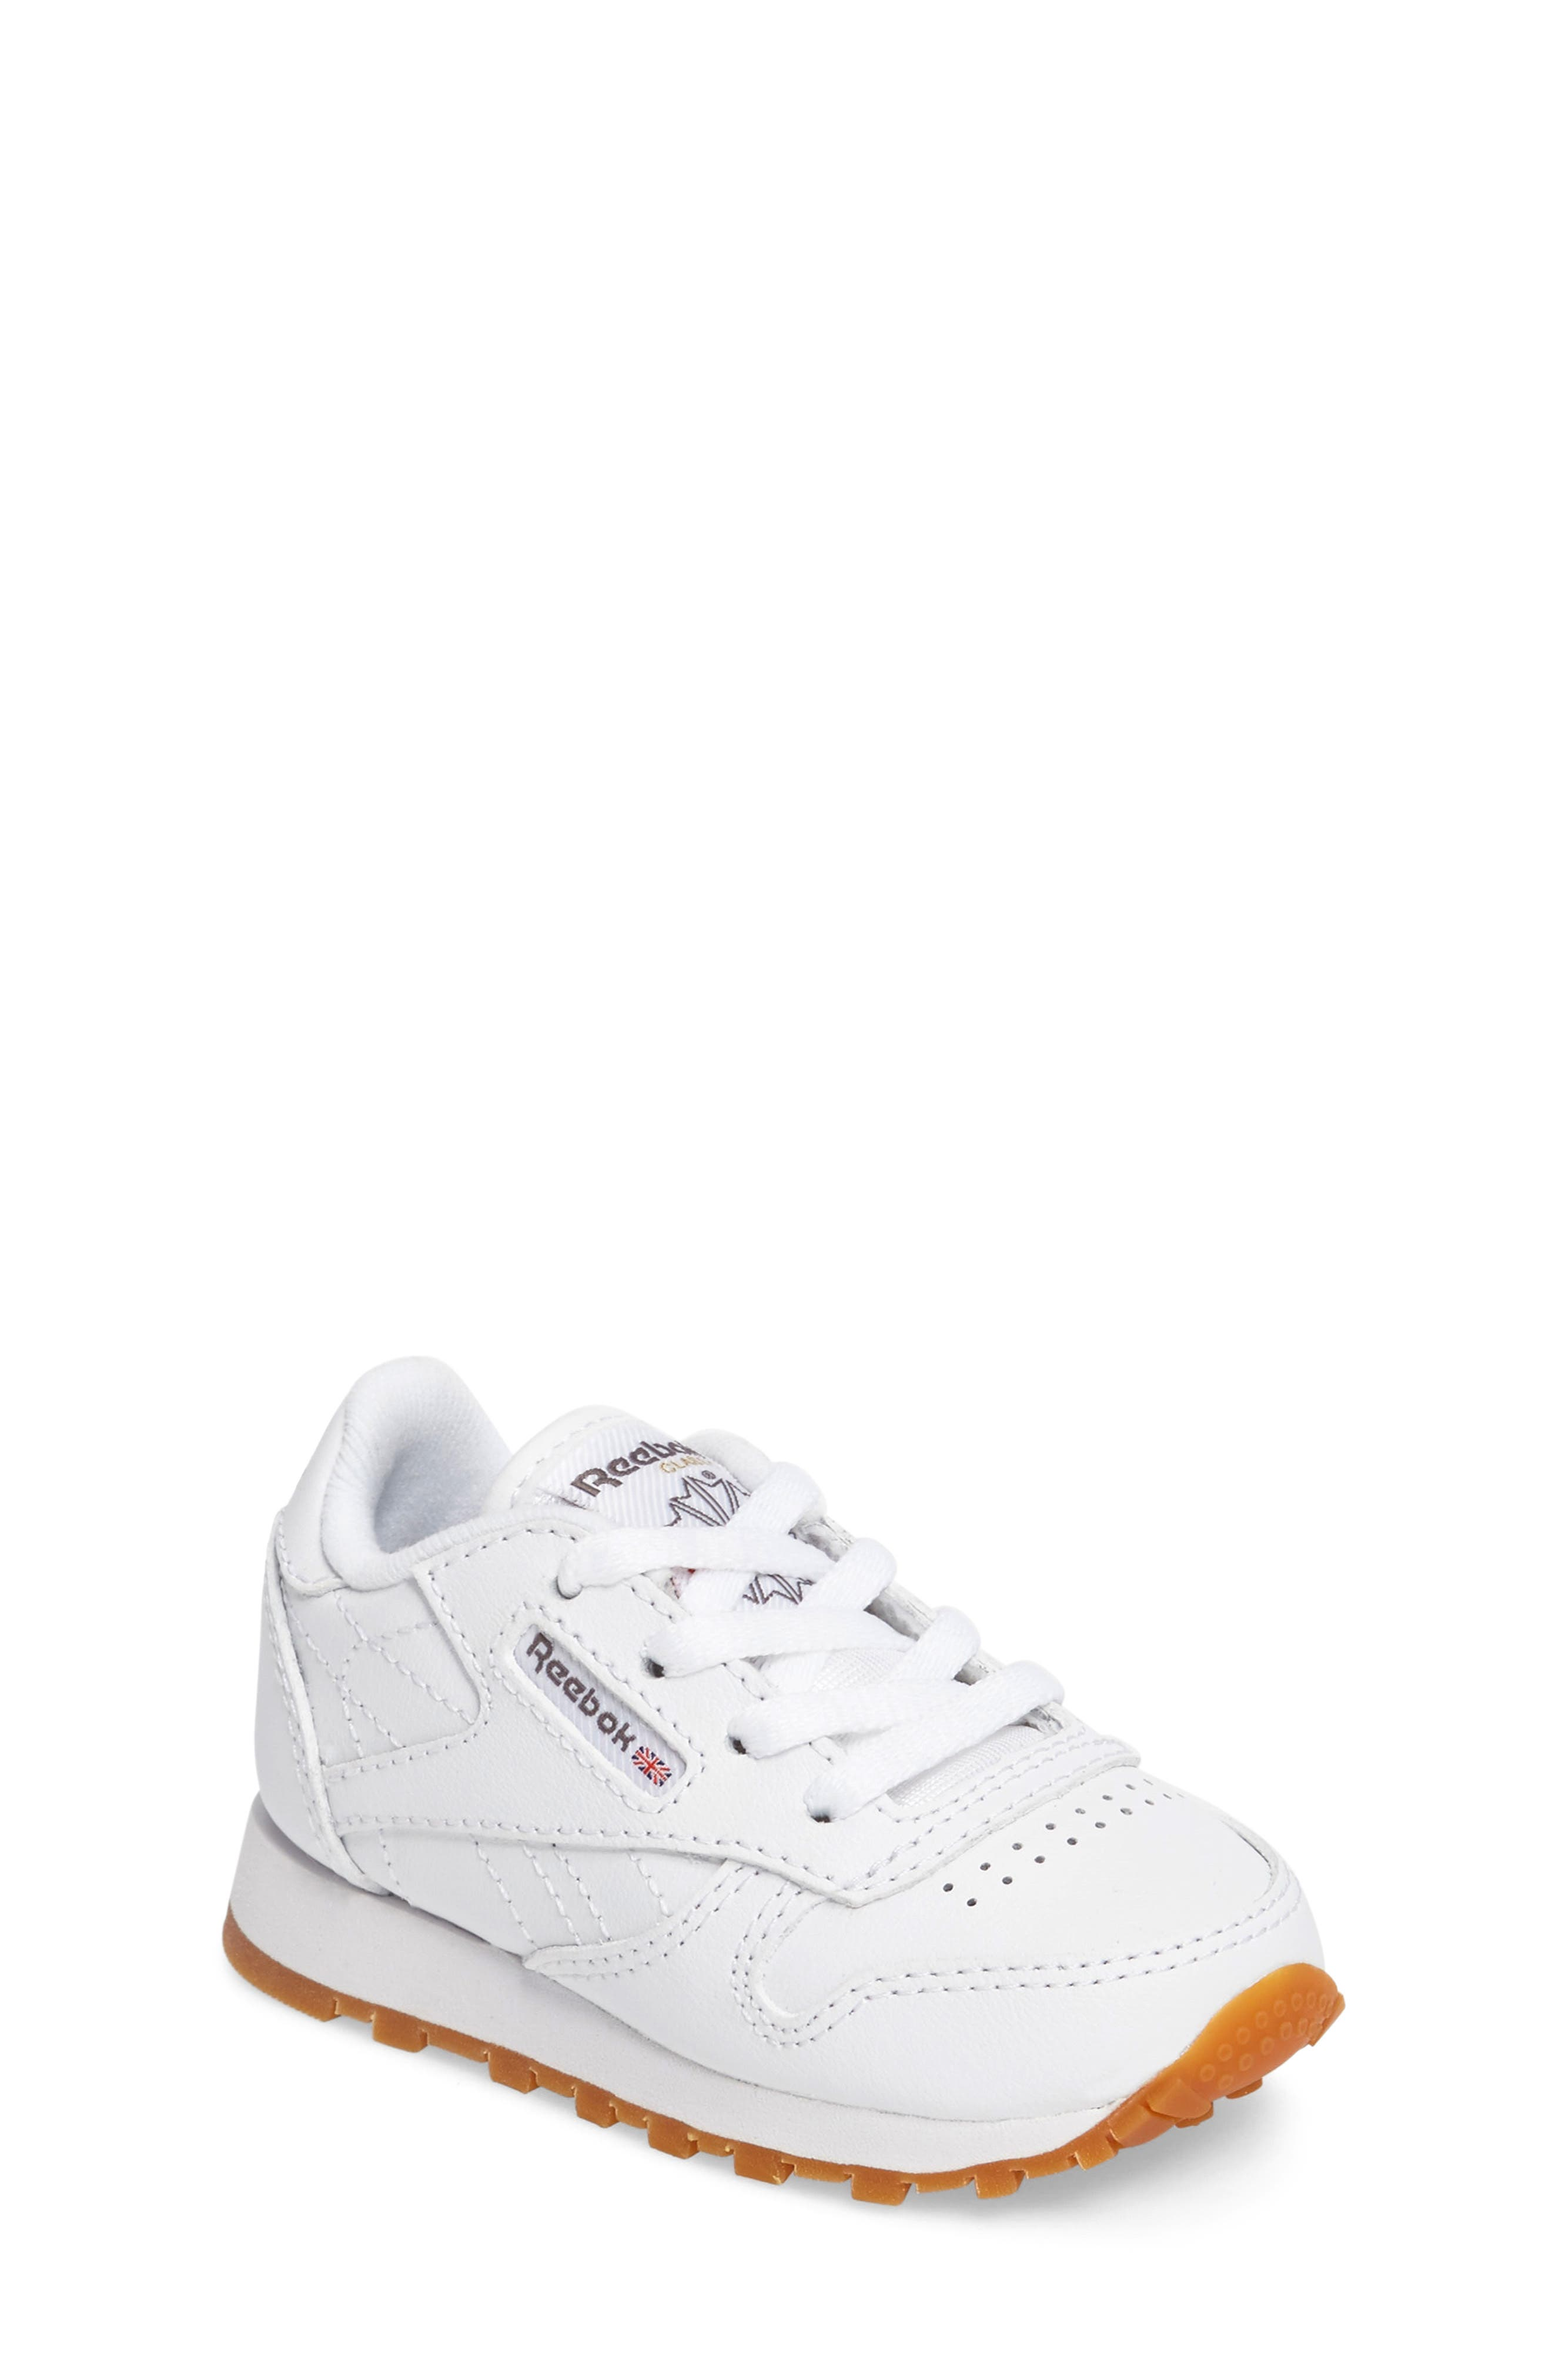 Classic Leather Sneaker,                         Main,                         color, 103